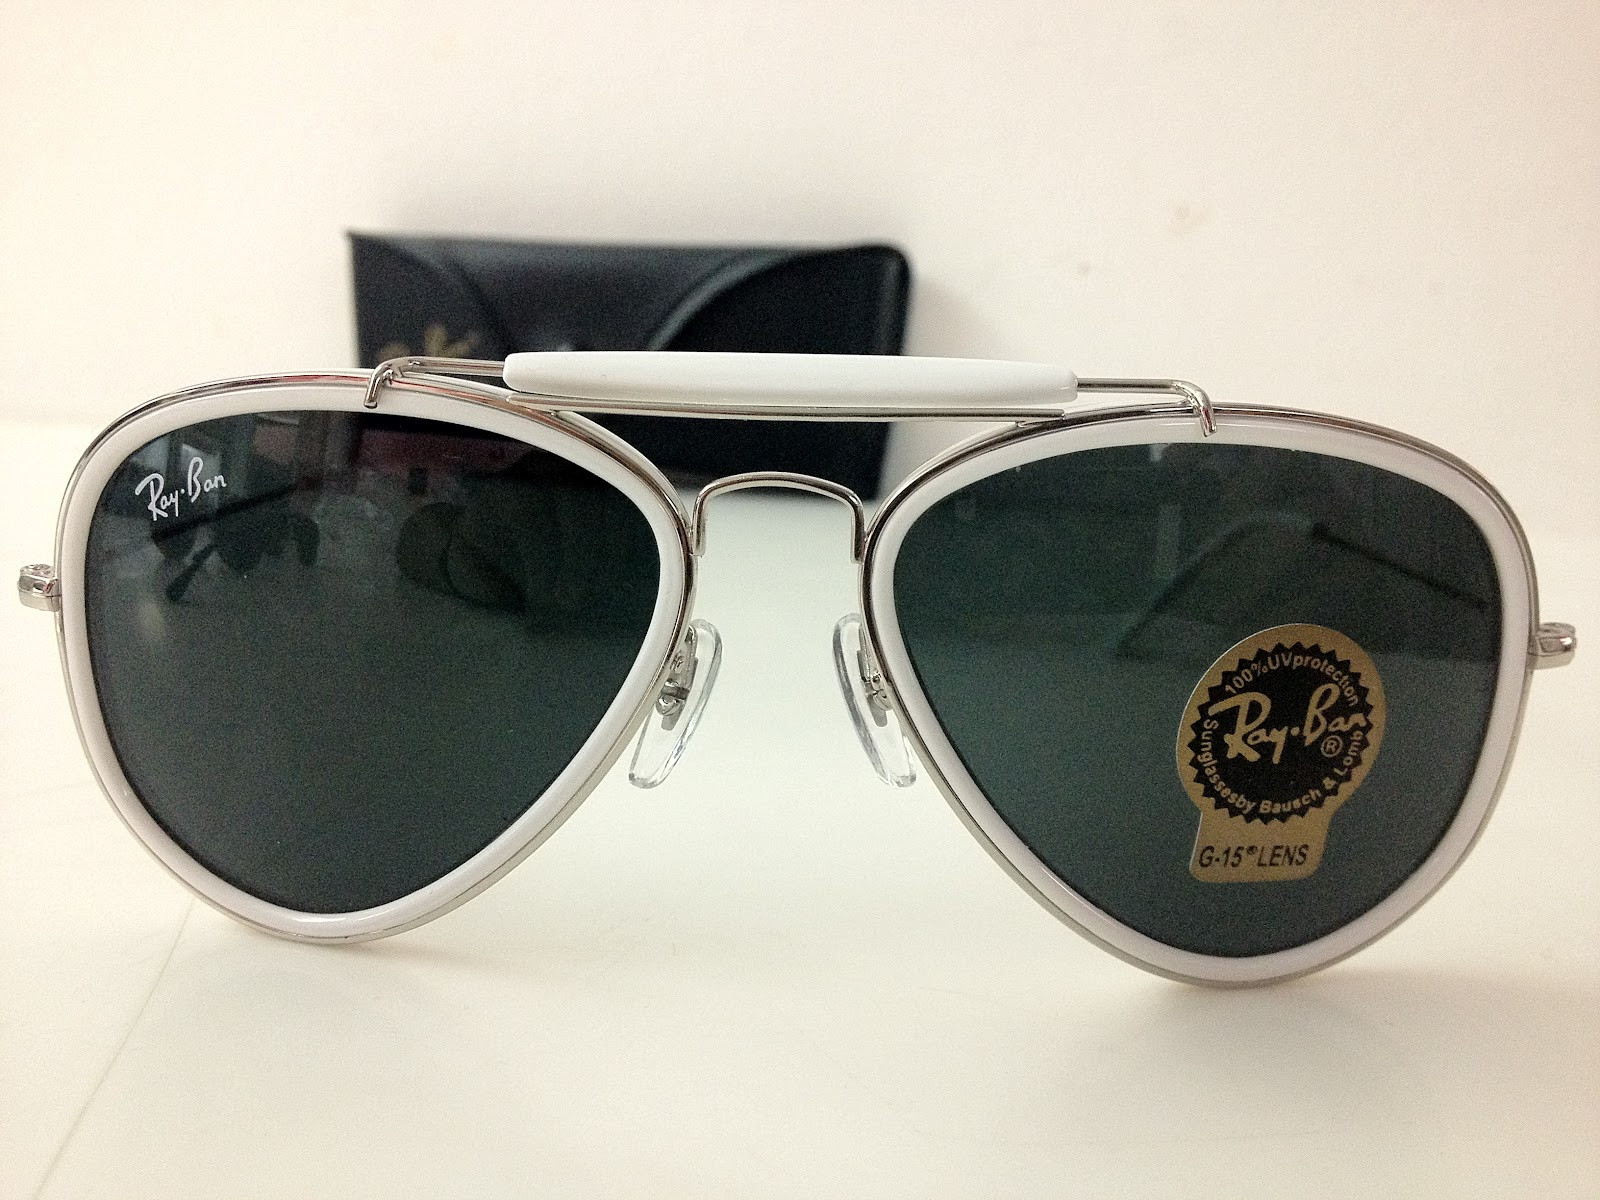 2d6d4a51f4 Chromax Ray Ban Price « Heritage Malta